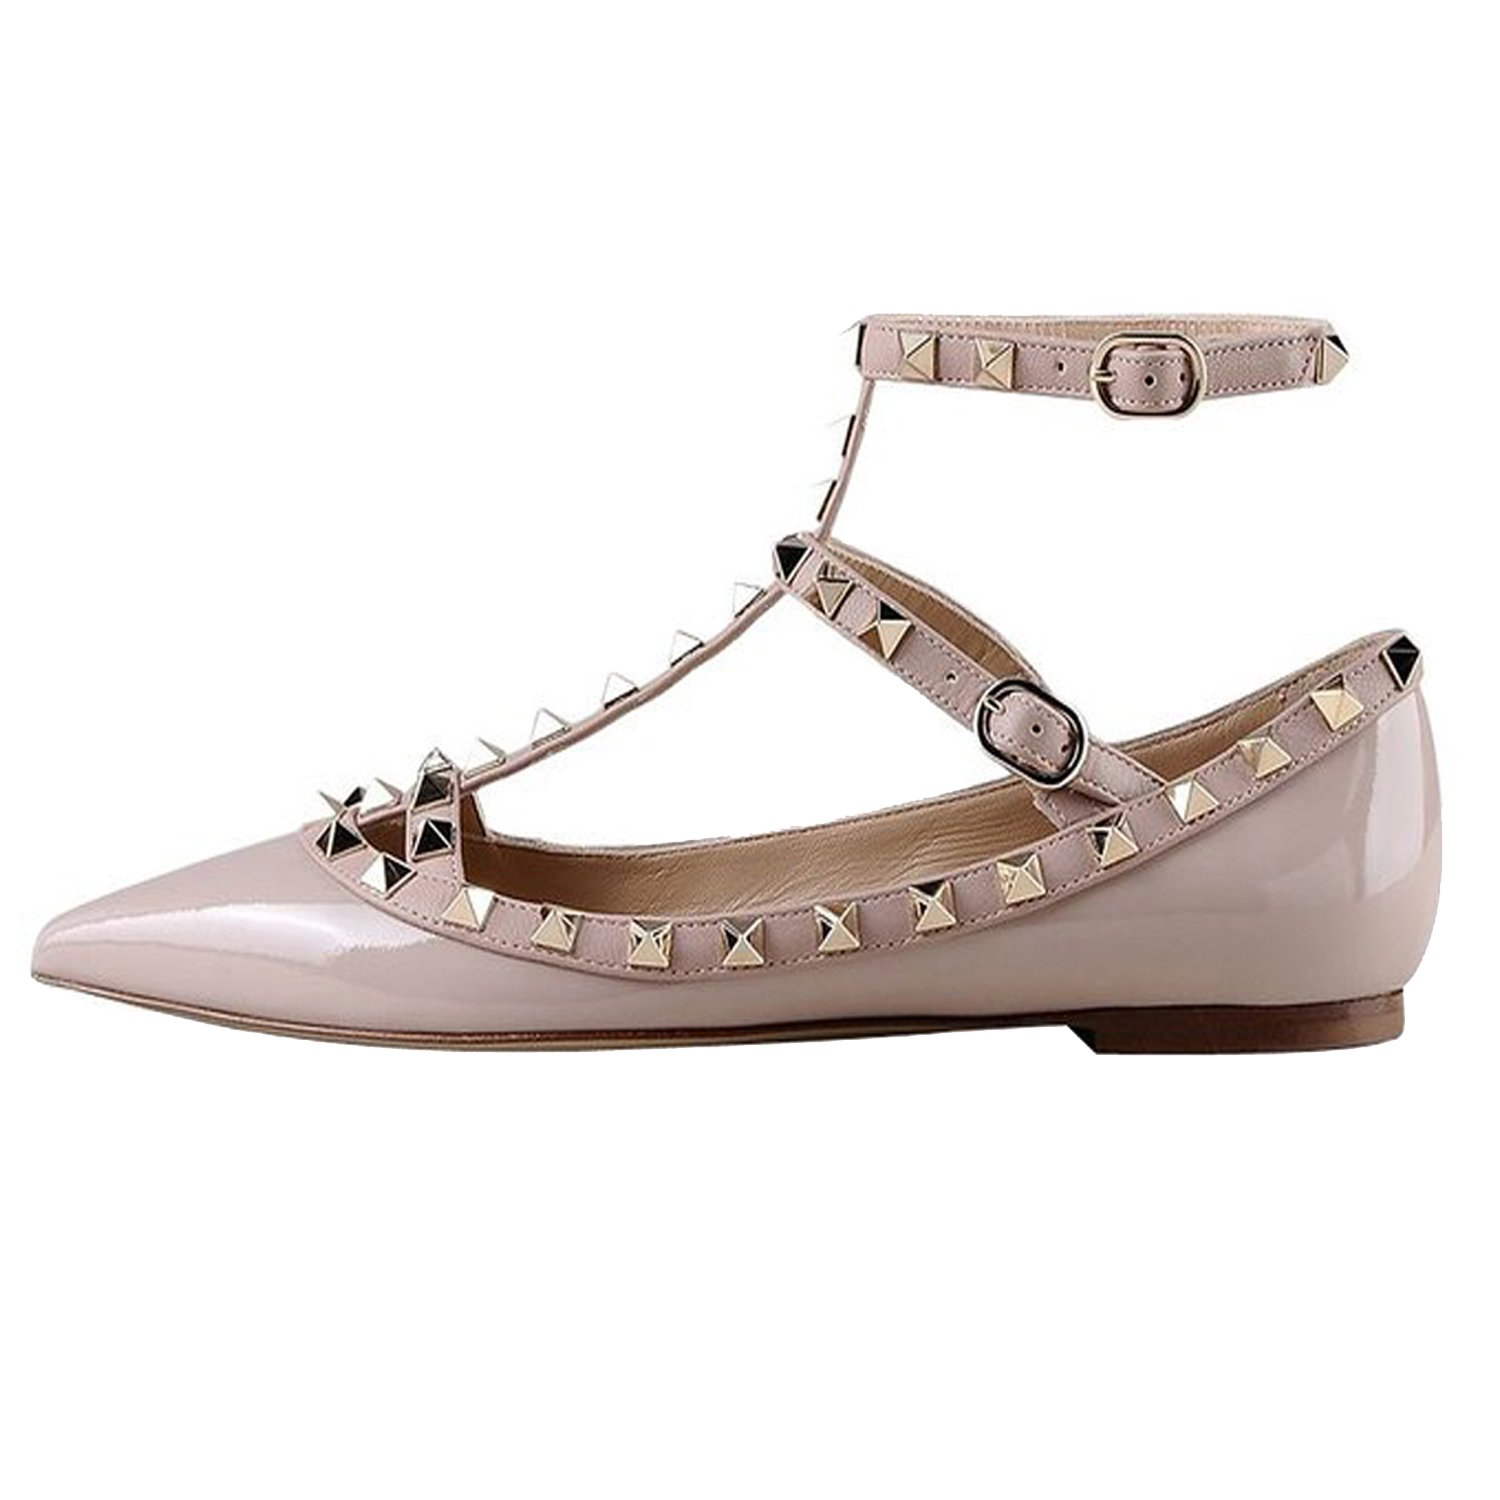 VOCOSI Women's Ankle Strap Studded Pointed Toe Pumps Rivets T-Strap 10 Flat Pumps Dress B0794PKTFQ 10 T-Strap B(M) US|Apricot(manmade Patent Leather With Gold Rivets) c9b663